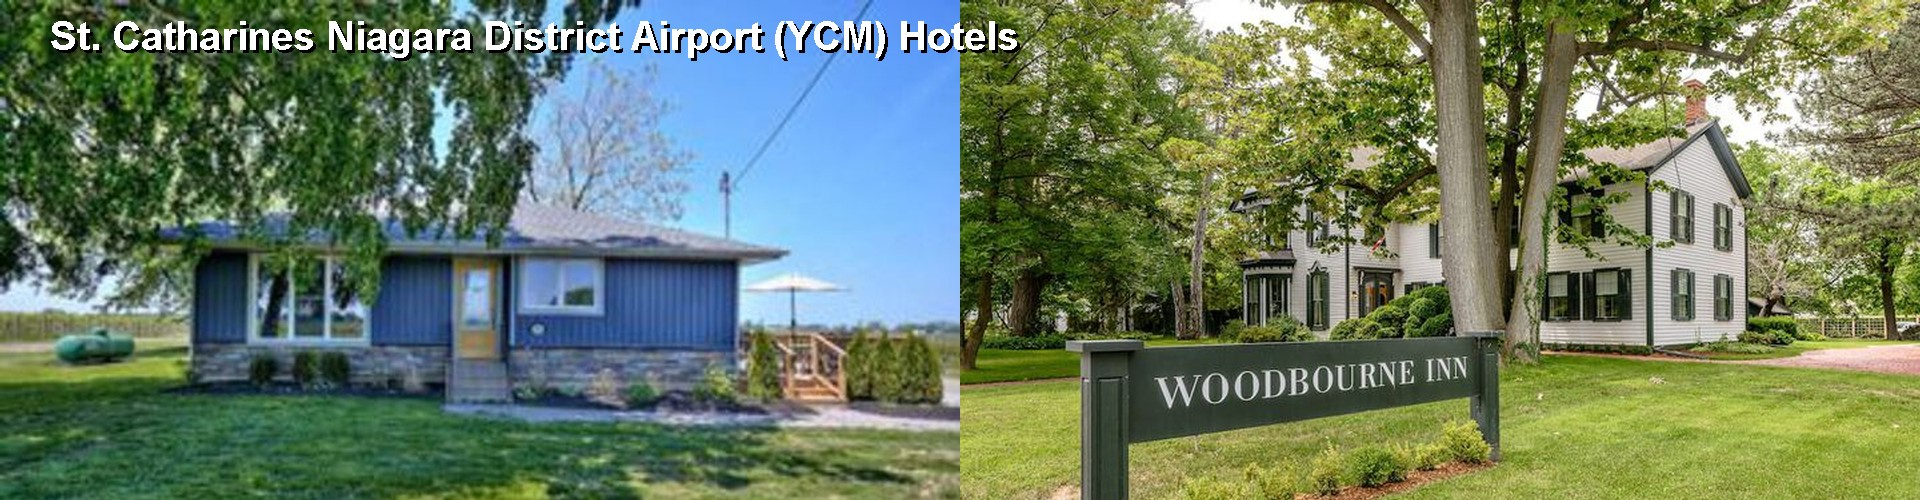 5 Best Hotels near St. Catharines Niagara District Airport (YCM)